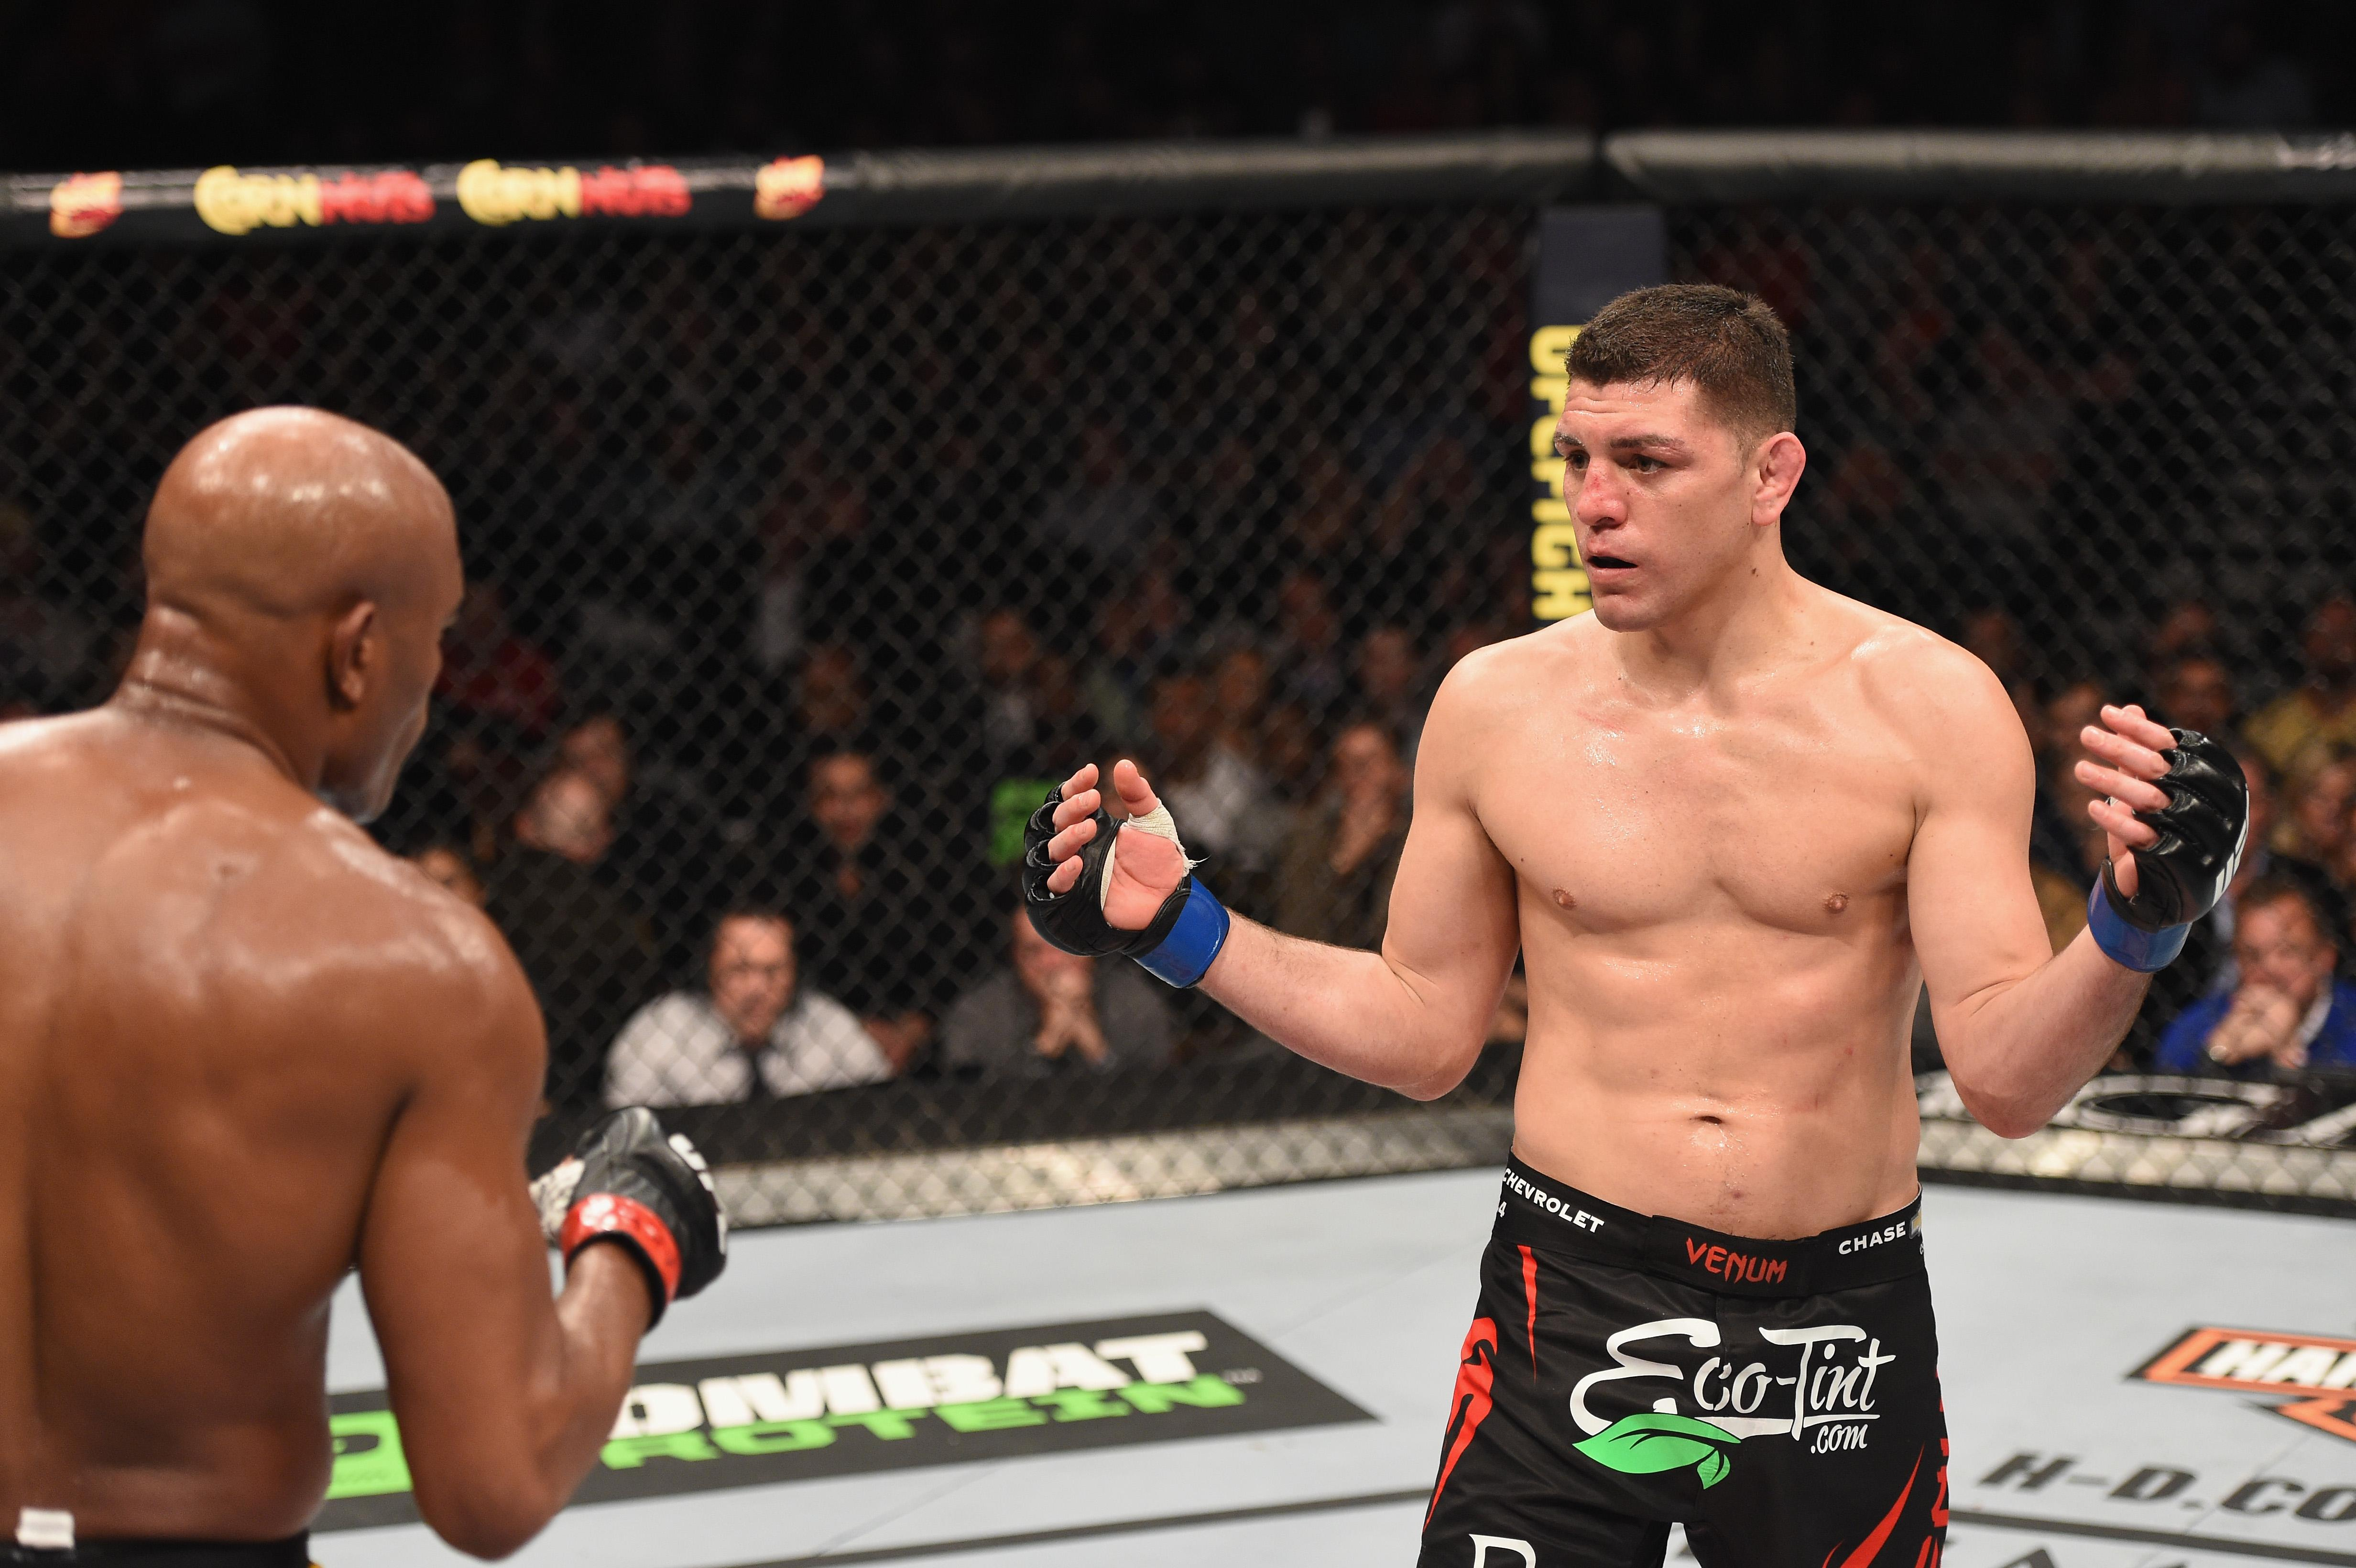 Diaz had moved up to the 185lbs middleweight limit to face the former champion Silva